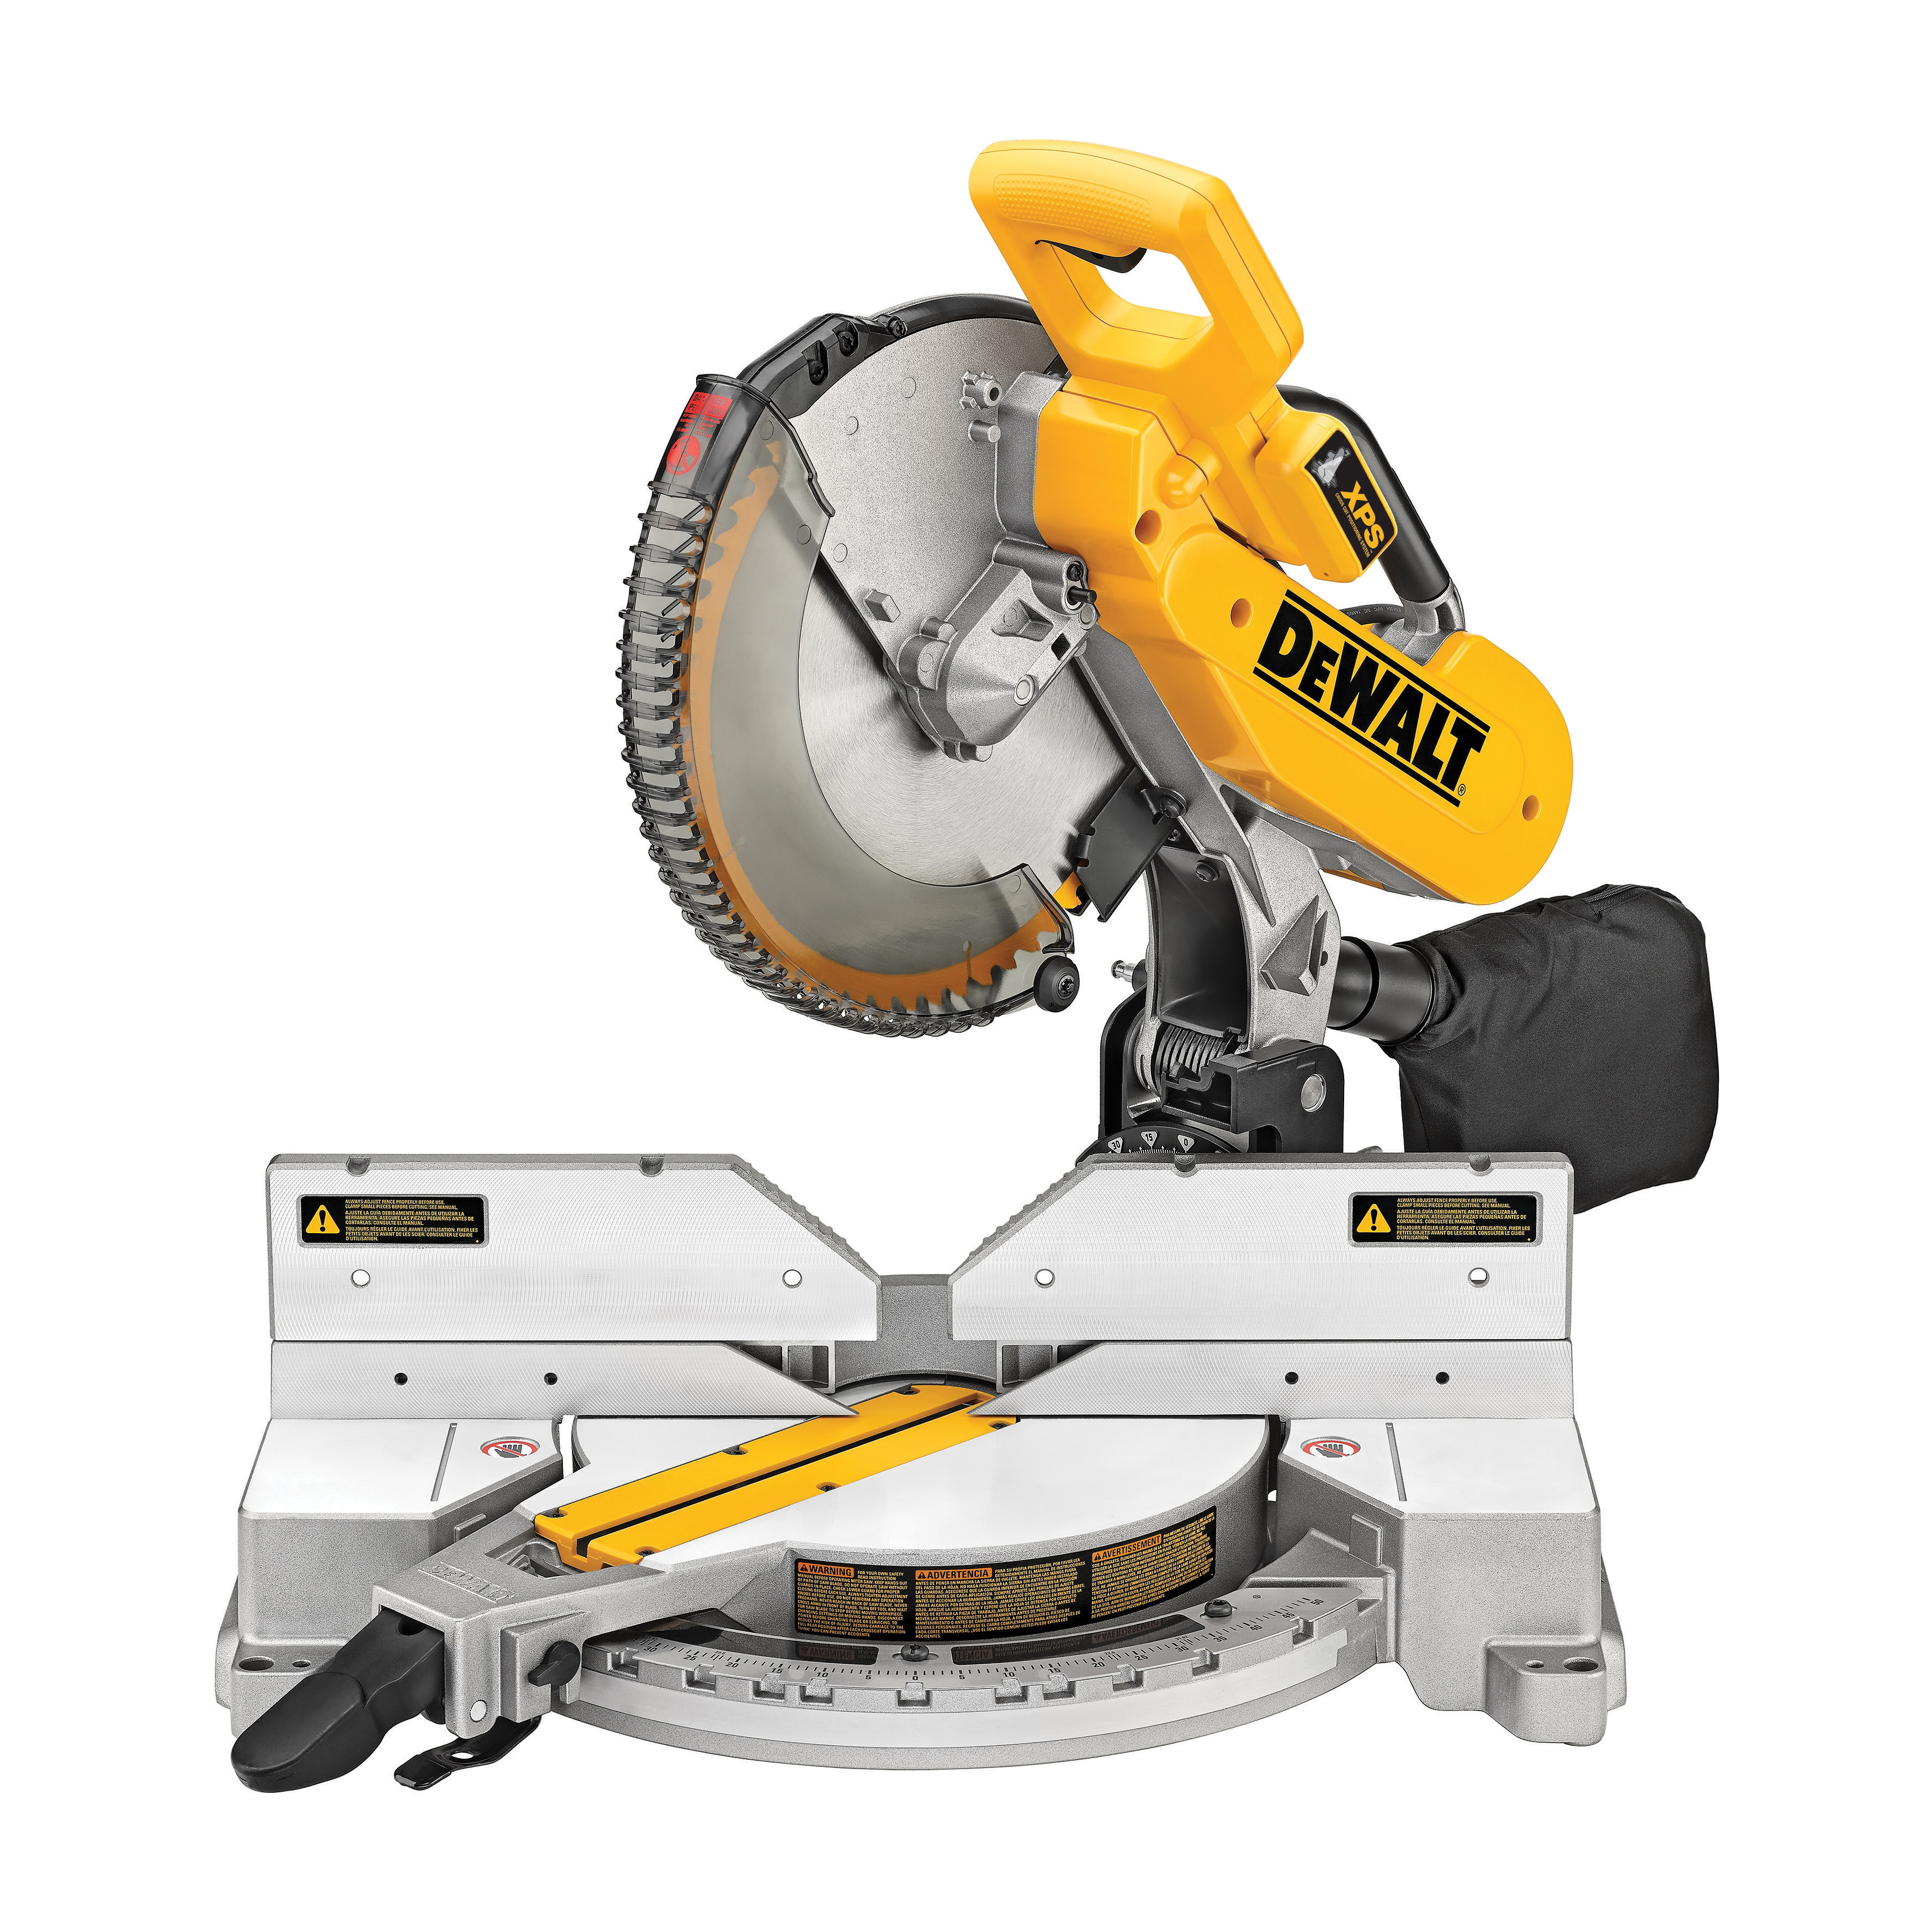 DeWALT® DW716XPS Double Bevel Compound Miter Saw, 12 in Dia Blade, 5/8 in, 1 in Arbor/Shank, 2 x 8 in, 4 x 6 in, 6-1/2 in, 10 in, 6-1/2 in, 6-5/8 in Cutting, 4 x 6 in at 45 deg Miter, 2 x 8 in at 45 deg Bevel